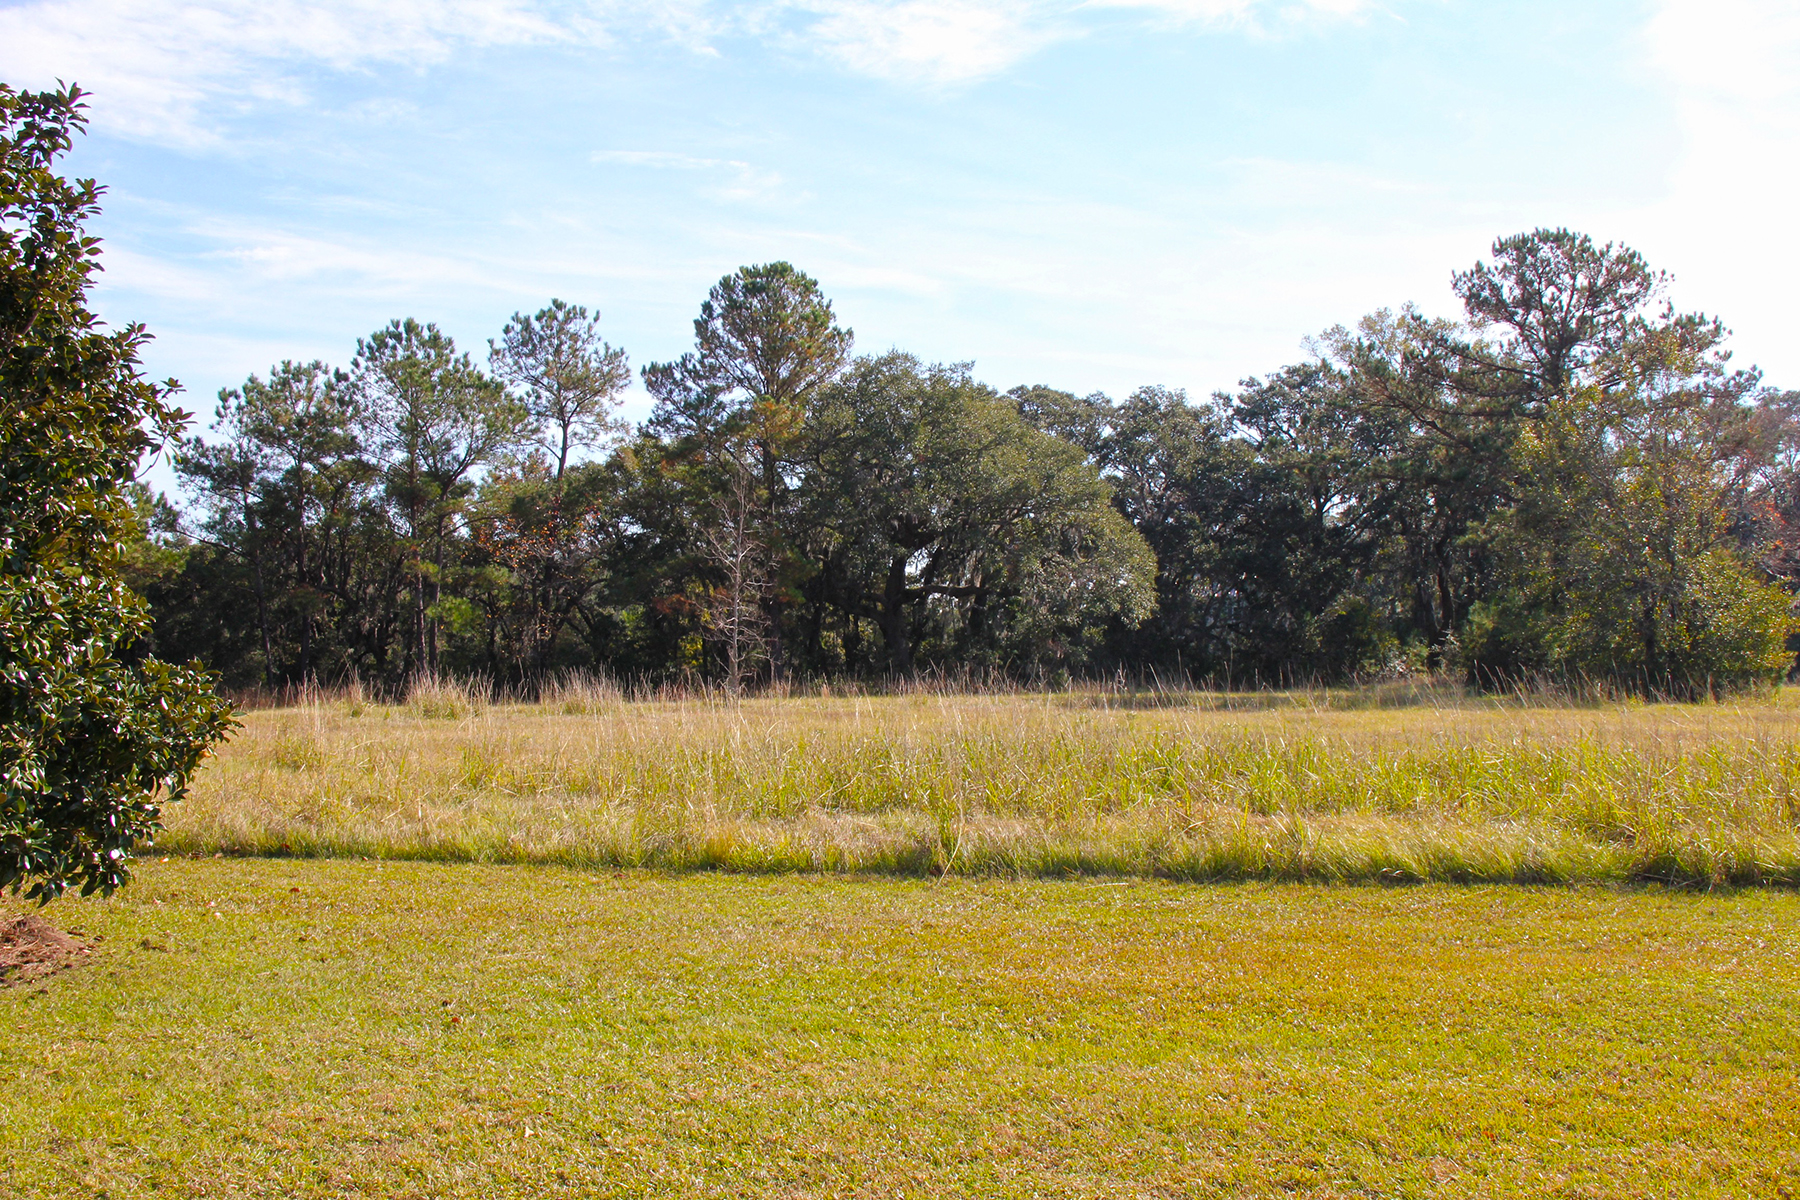 Land for Sale at 1604 Bernier Commons Johns Island, South Carolina, 29455 United States